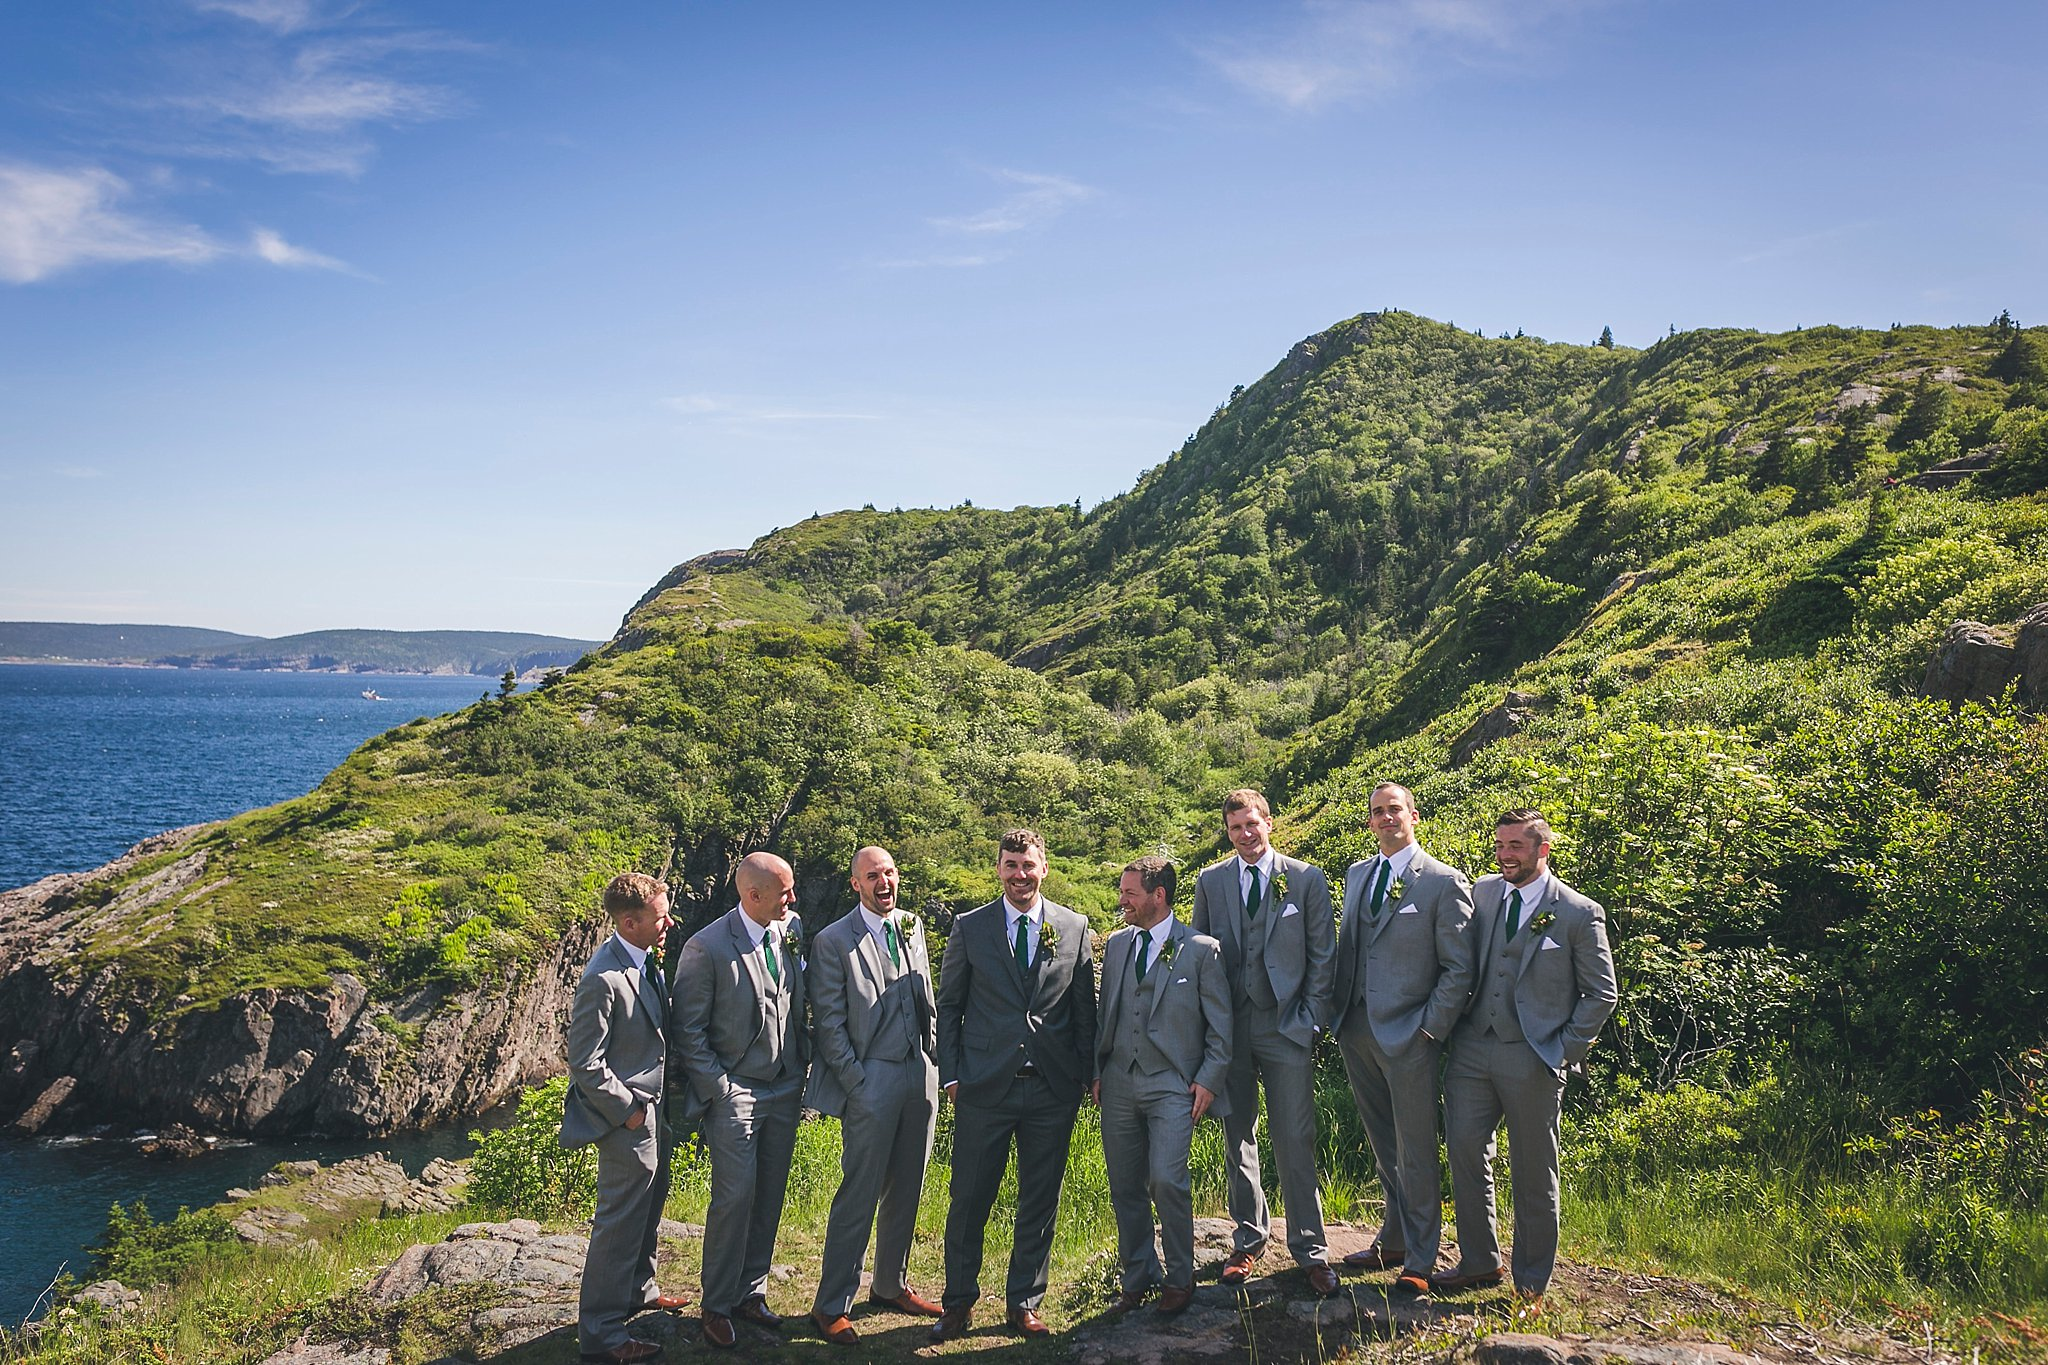 Groom and his groomsmen share a laugh at Cuckhold's Cove during their wedding in St. John's, Newfoundland.